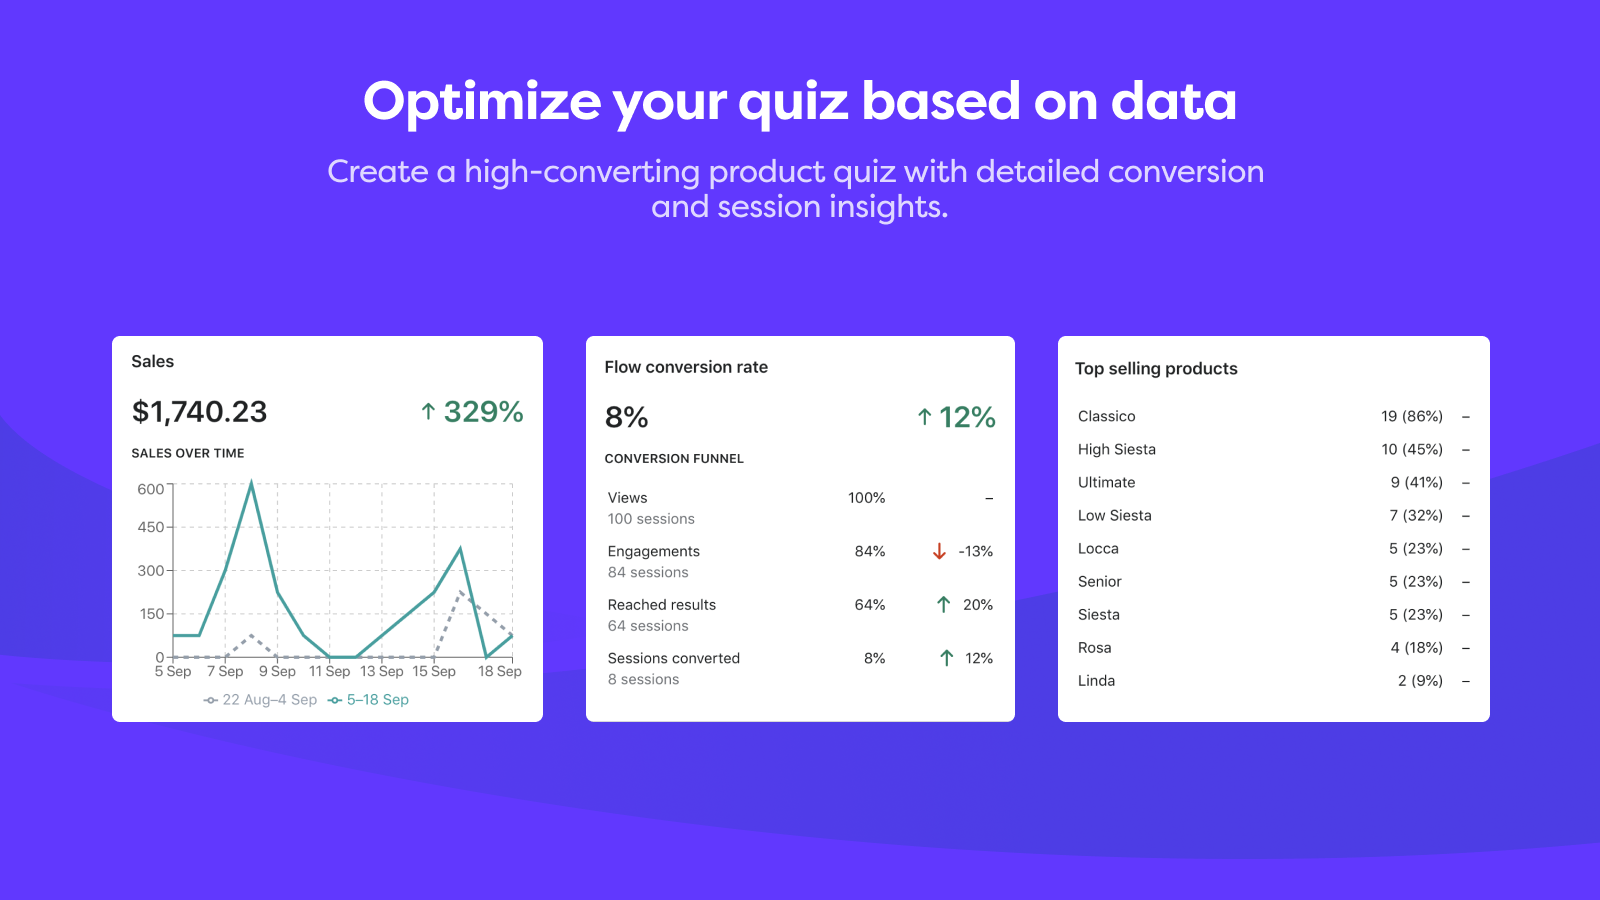 Optimize your quiz based on data